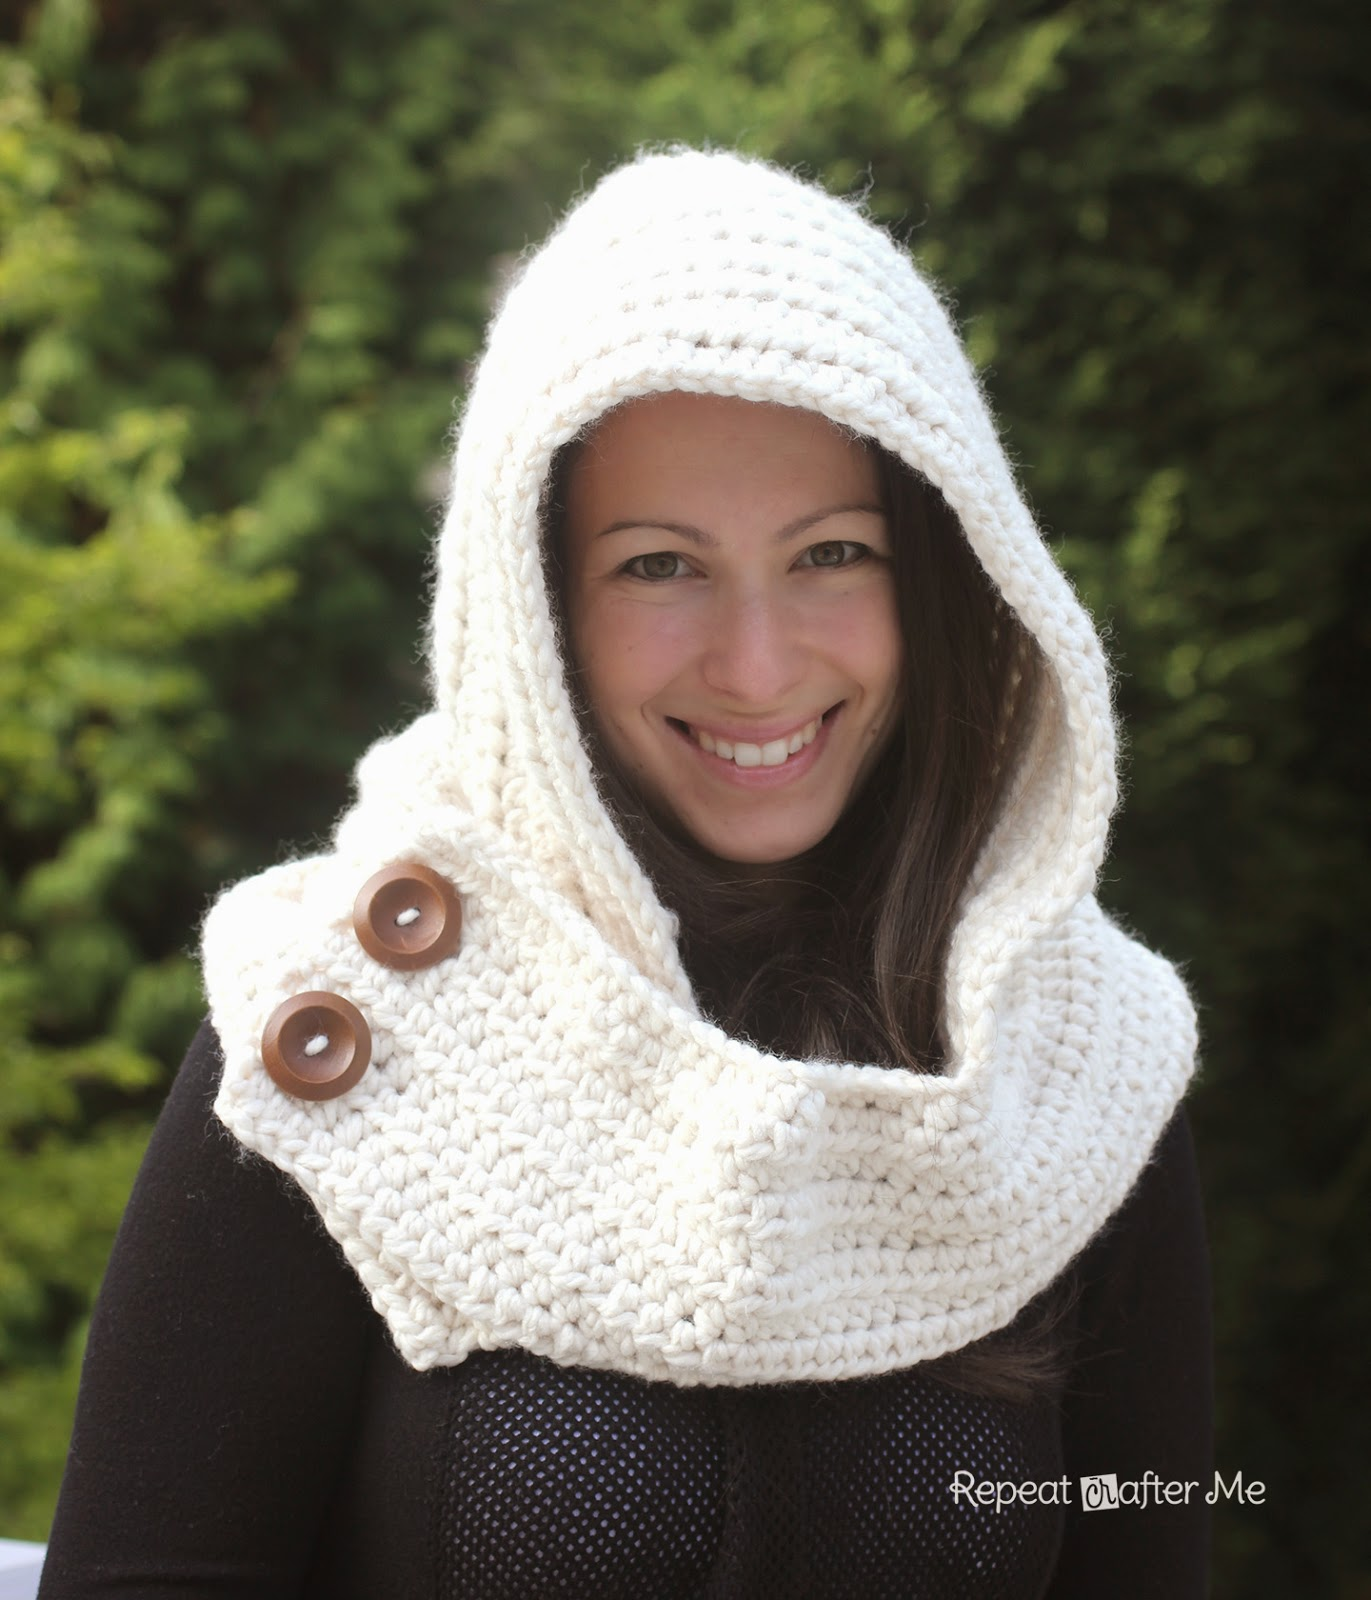 Hooded Cowl Knit Pattern : Hooded Crochet Cowl with Lion Brand Thick & Quick Yarn #Scarfie - Repeat ...